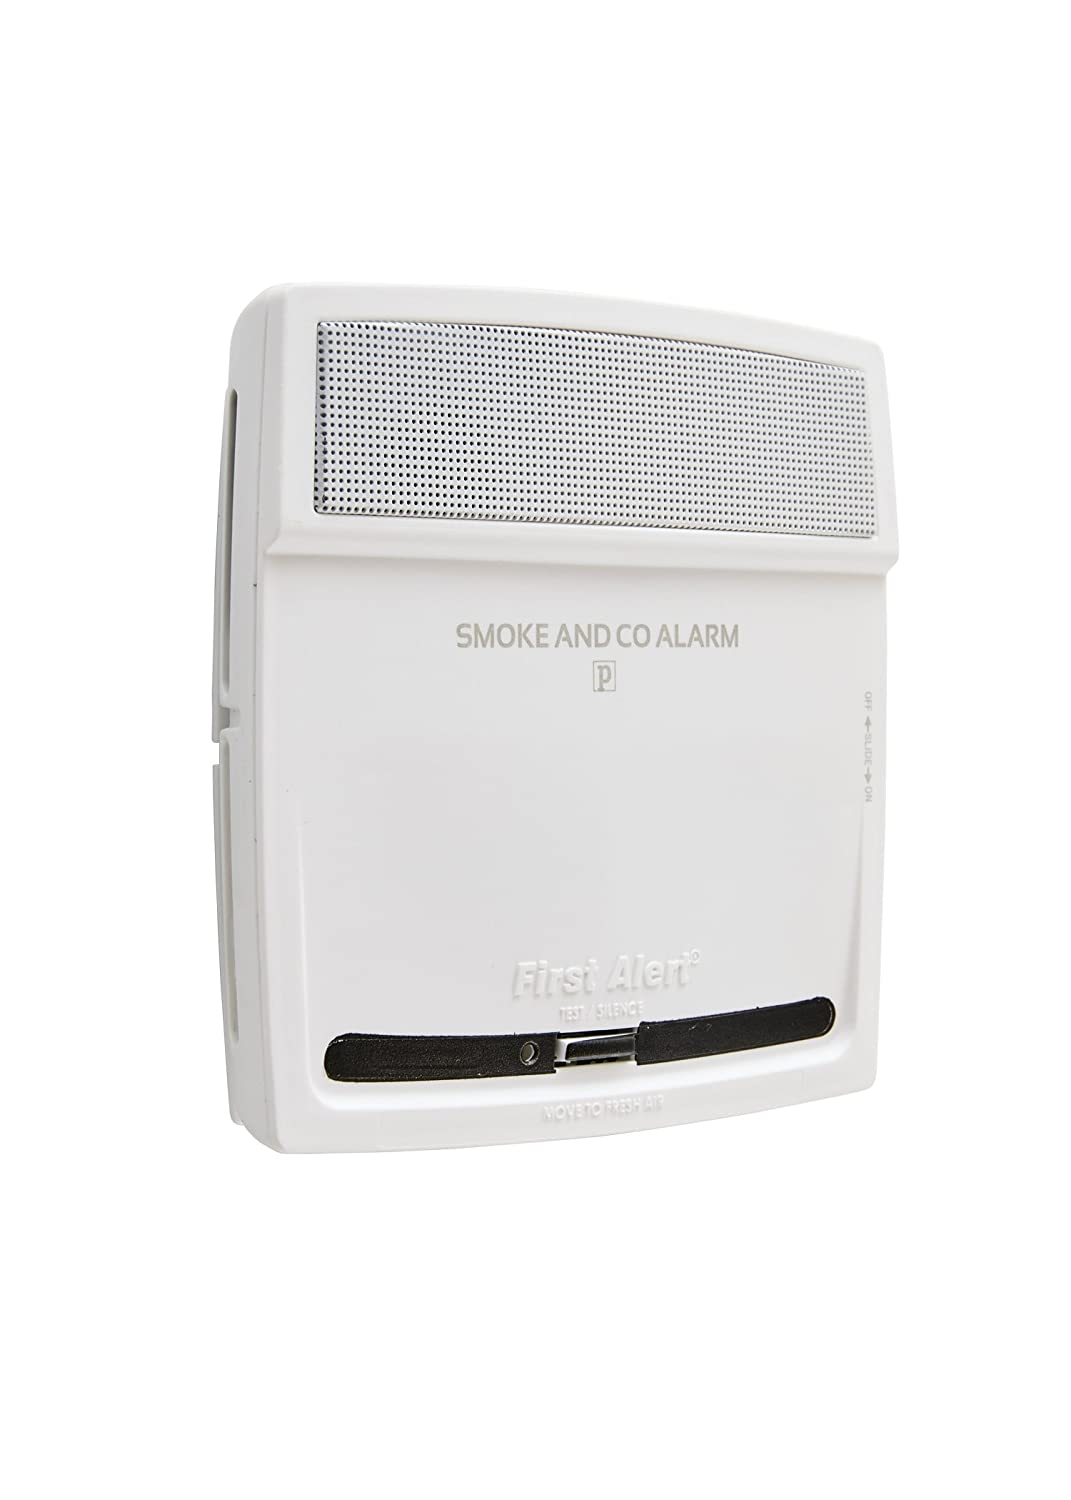 First Alert PC910V 10 Year 2 in 1 Photoelectric Carbon Monoxide Alarm and Smoke Detector with Voice Alert White